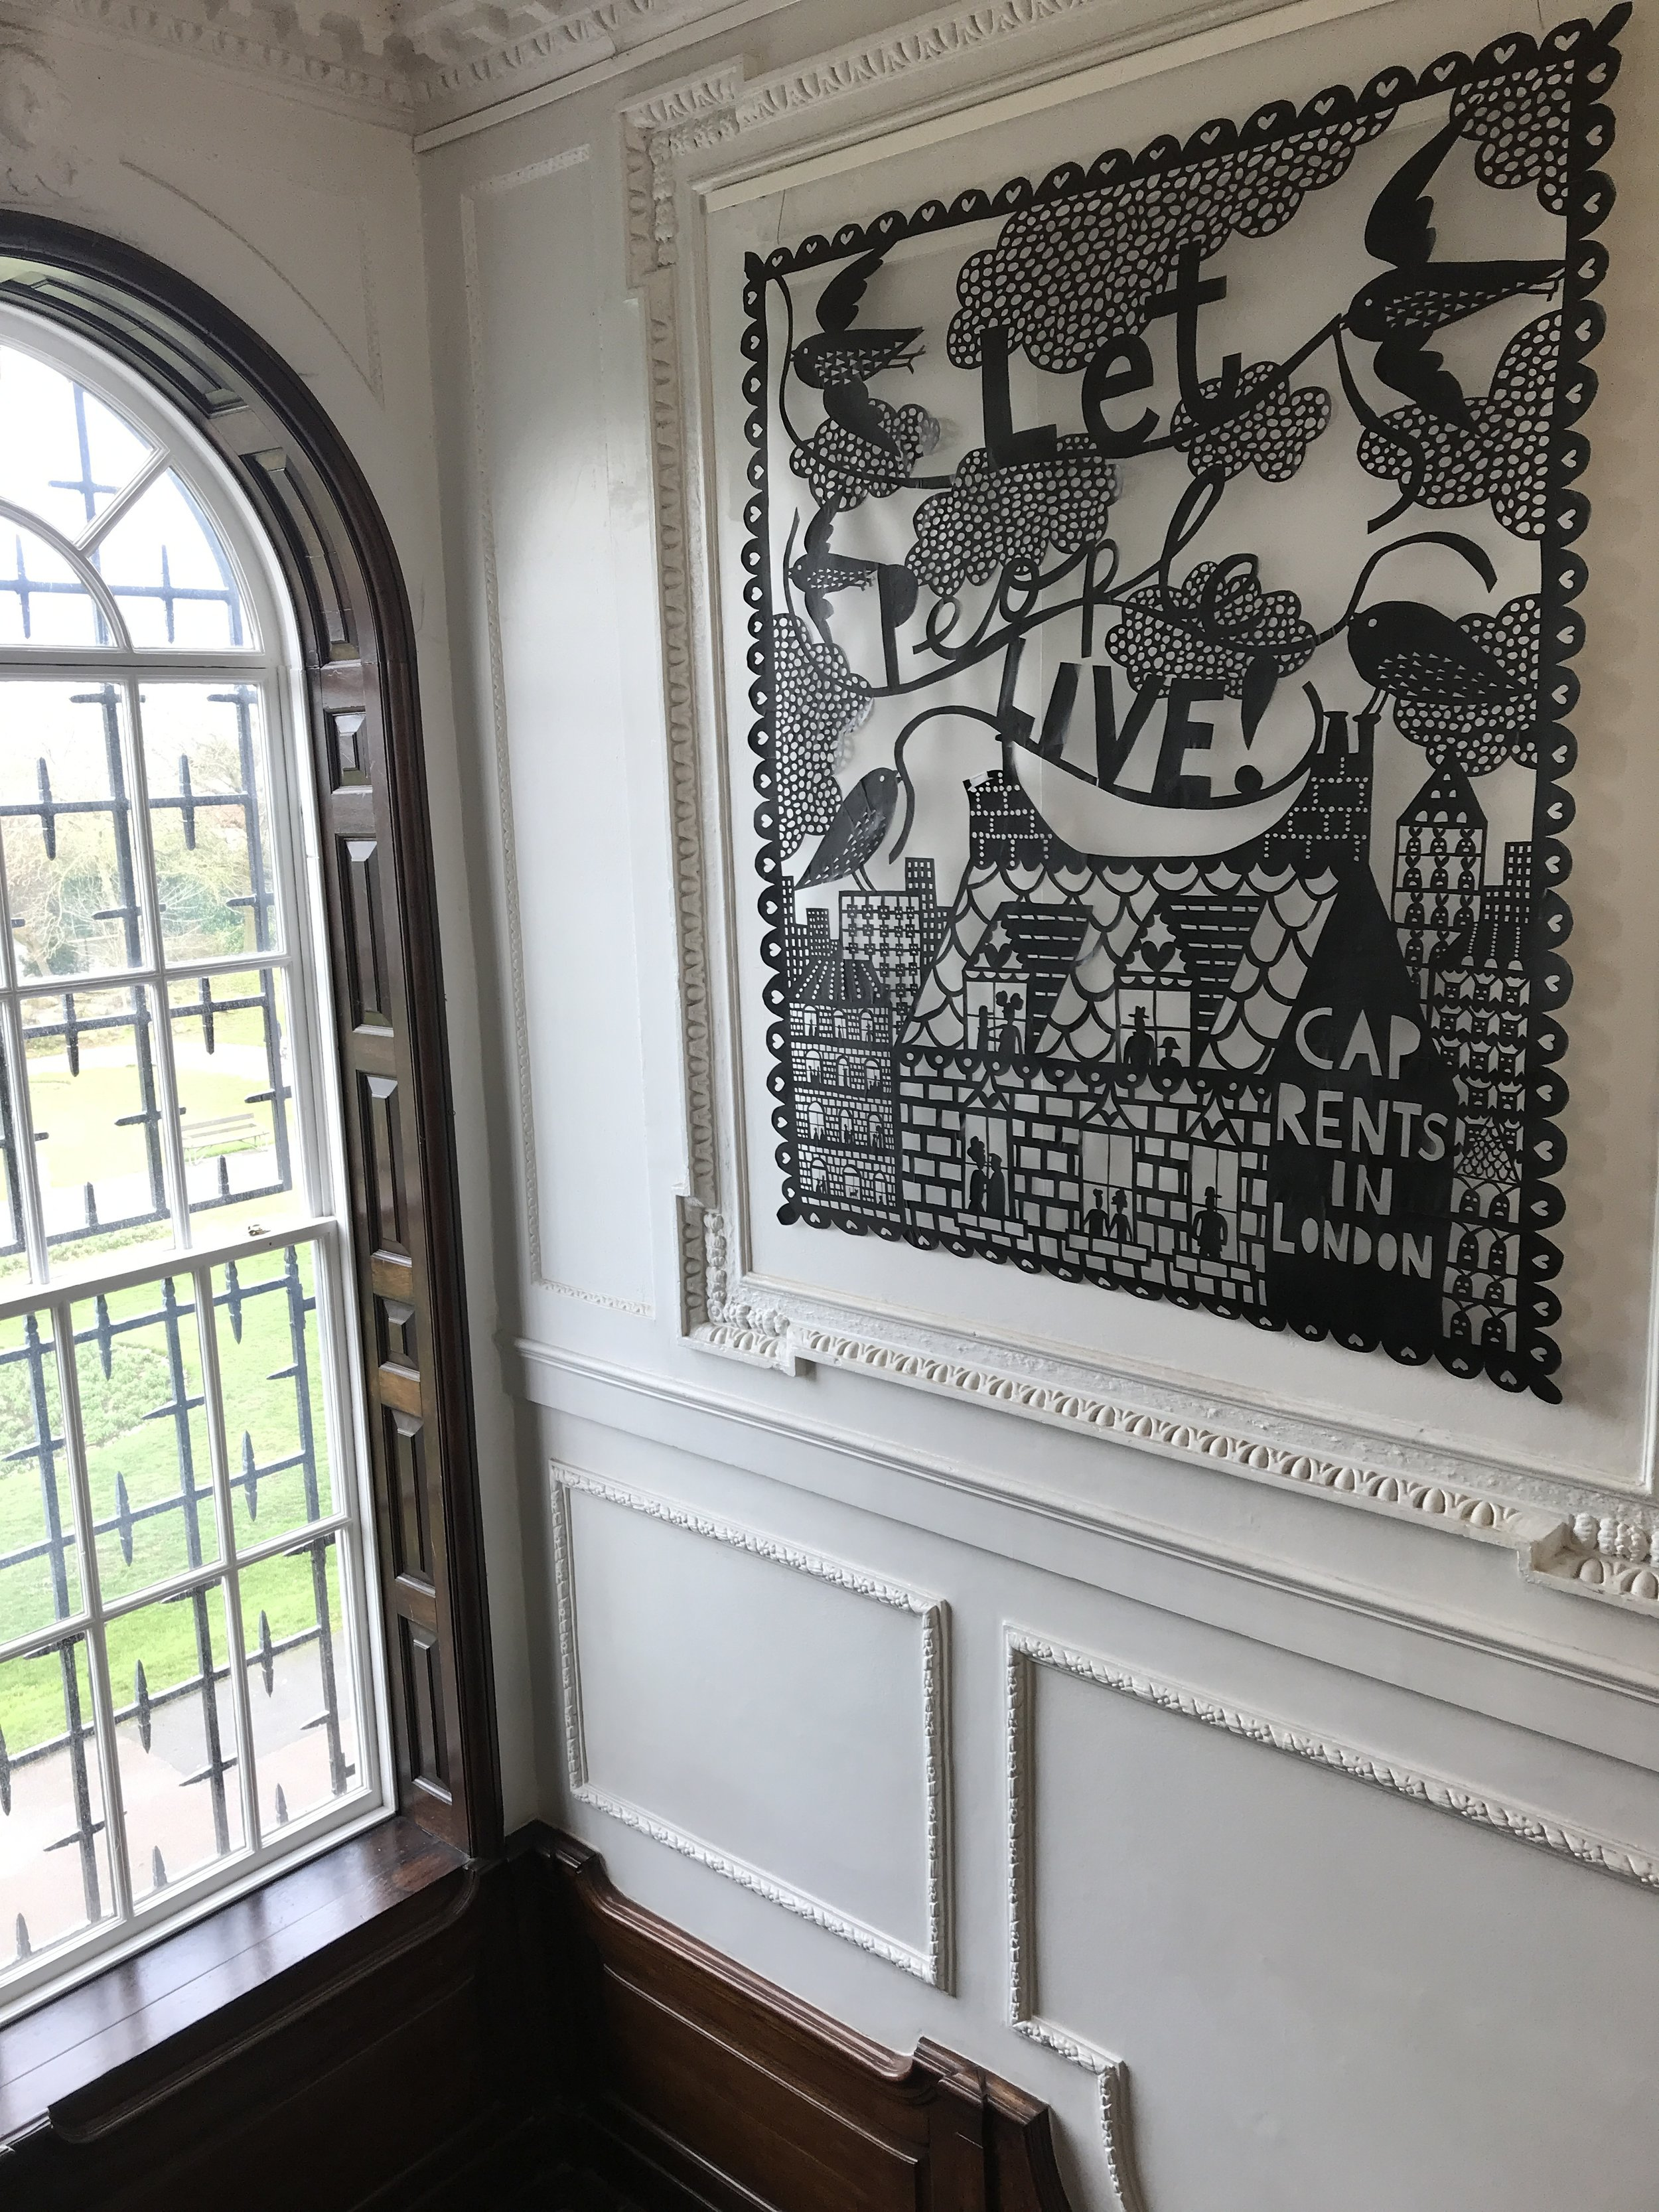 - Rob Ryan, 'Let People Live! Cap Rents in London' (2018) in situ at the William Morris Gallery, Walthamstow